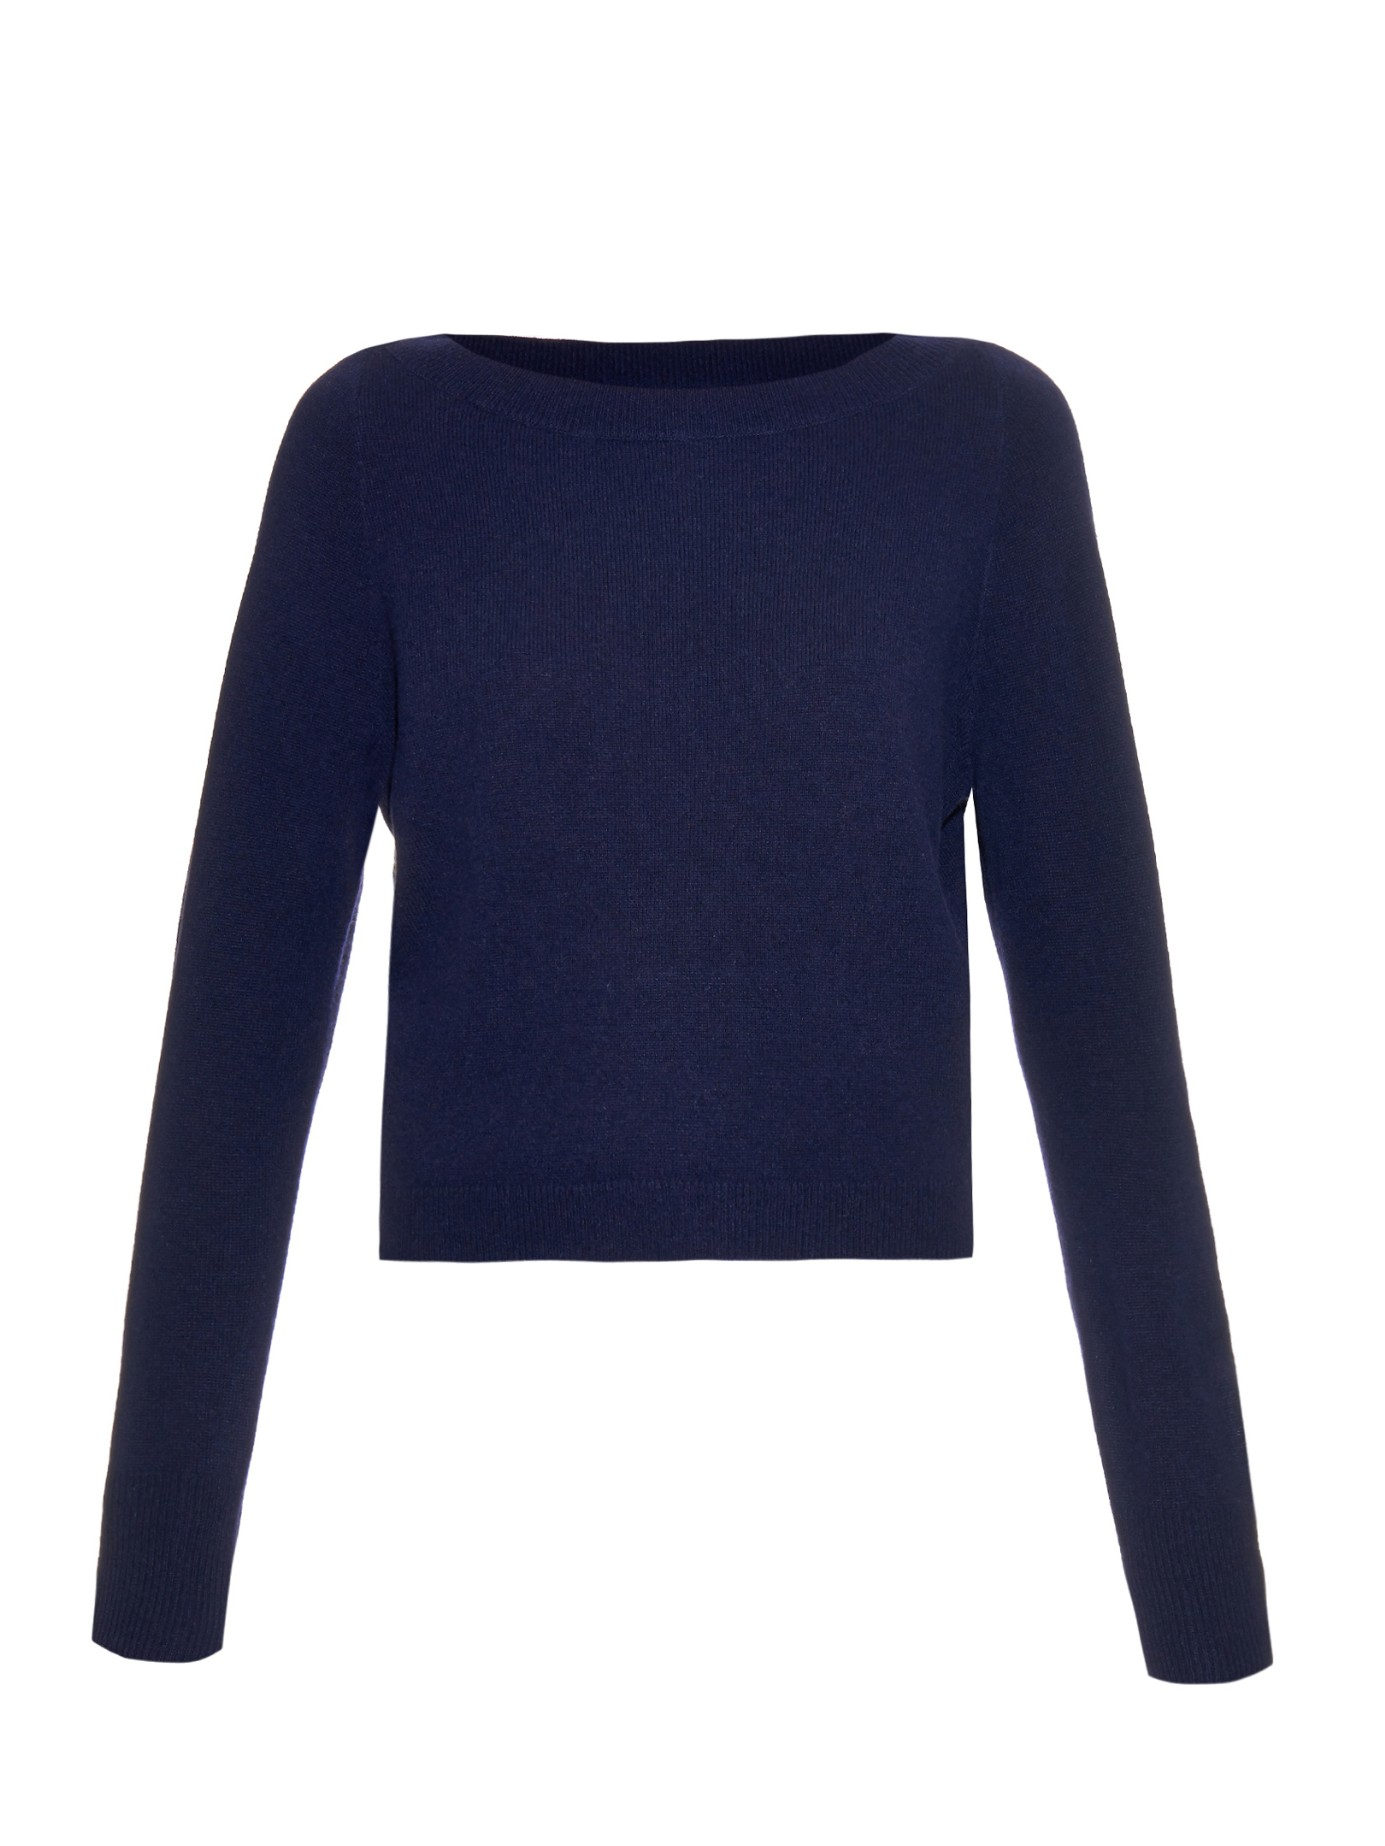 Osman Cashmere-knit Cropped Sweater in Blue | Lyst